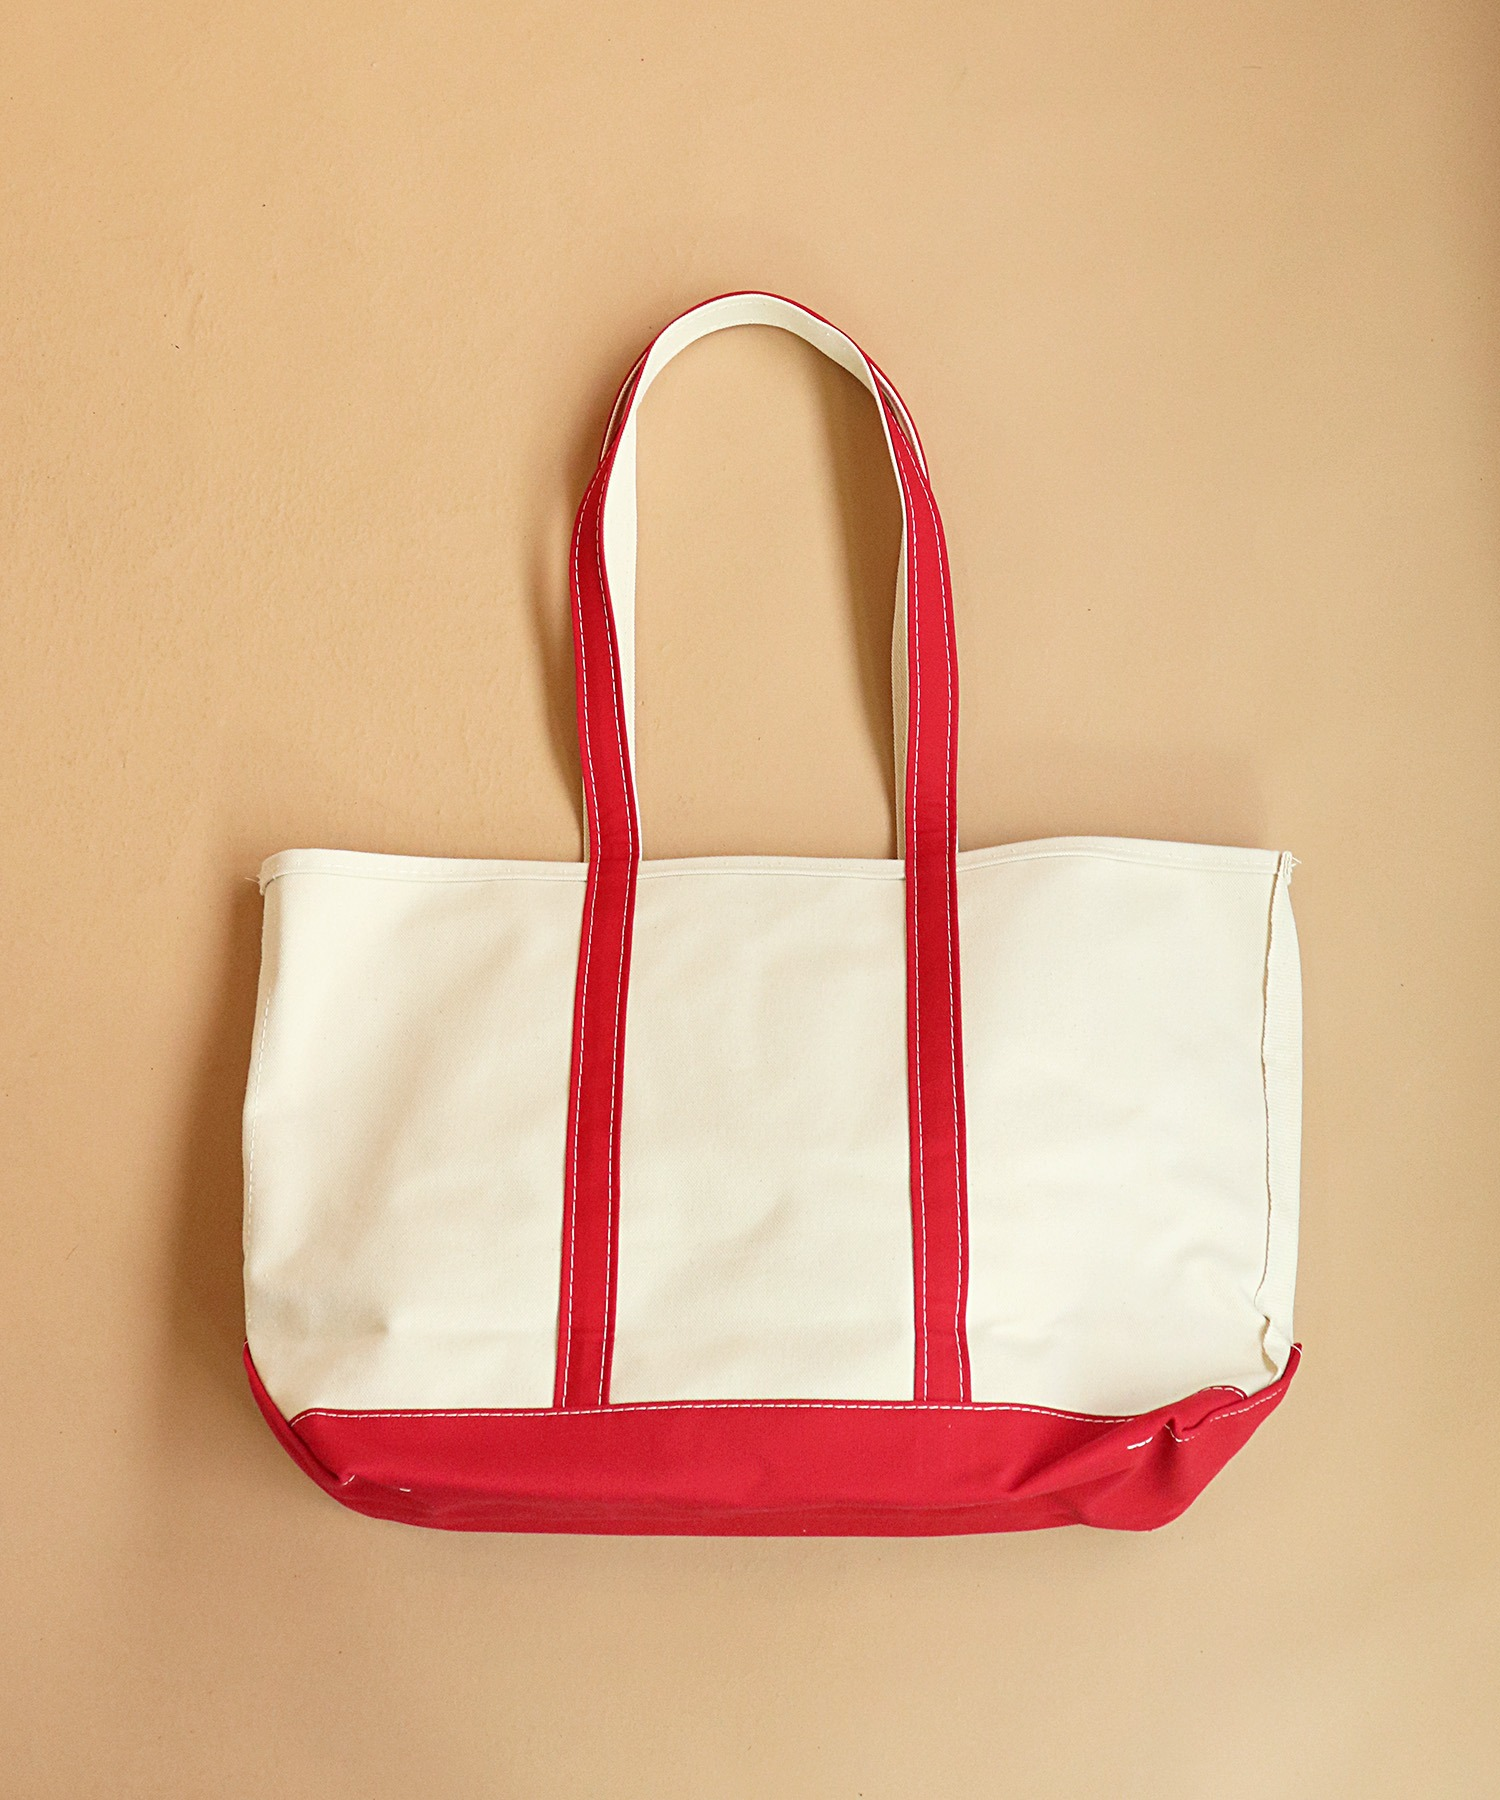 【L.L.Bean/エルエルビーン】CANVAS TOTE BAG LARGE Handles/Regular